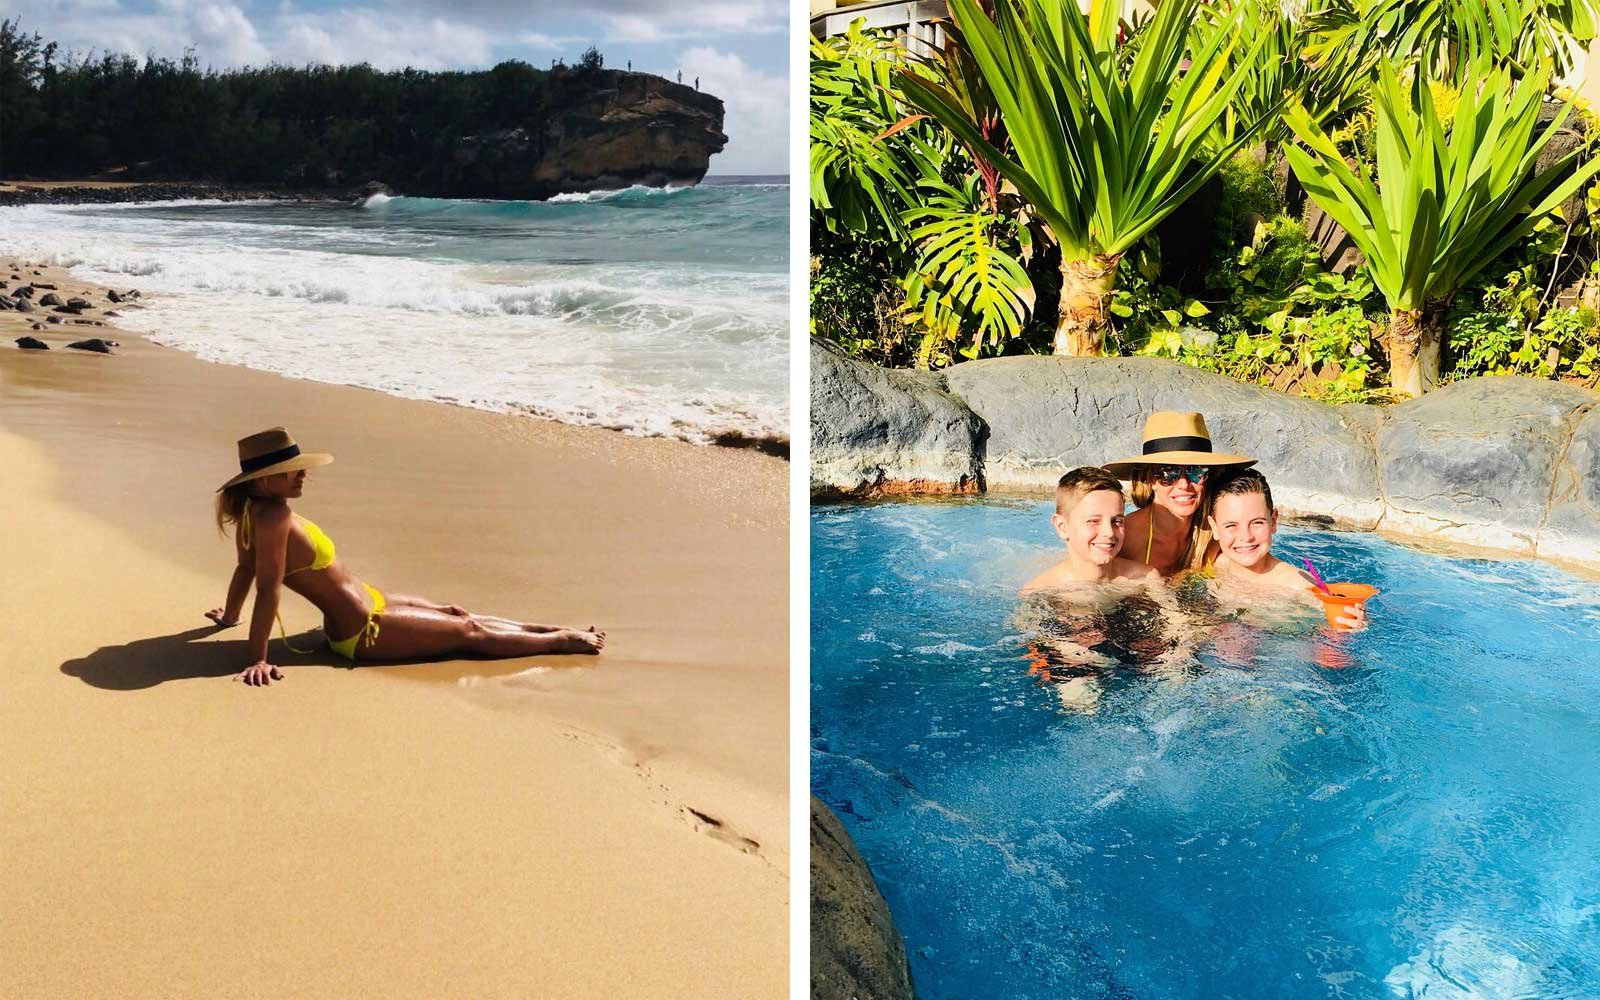 Britney Spears on vacation in Hawaii